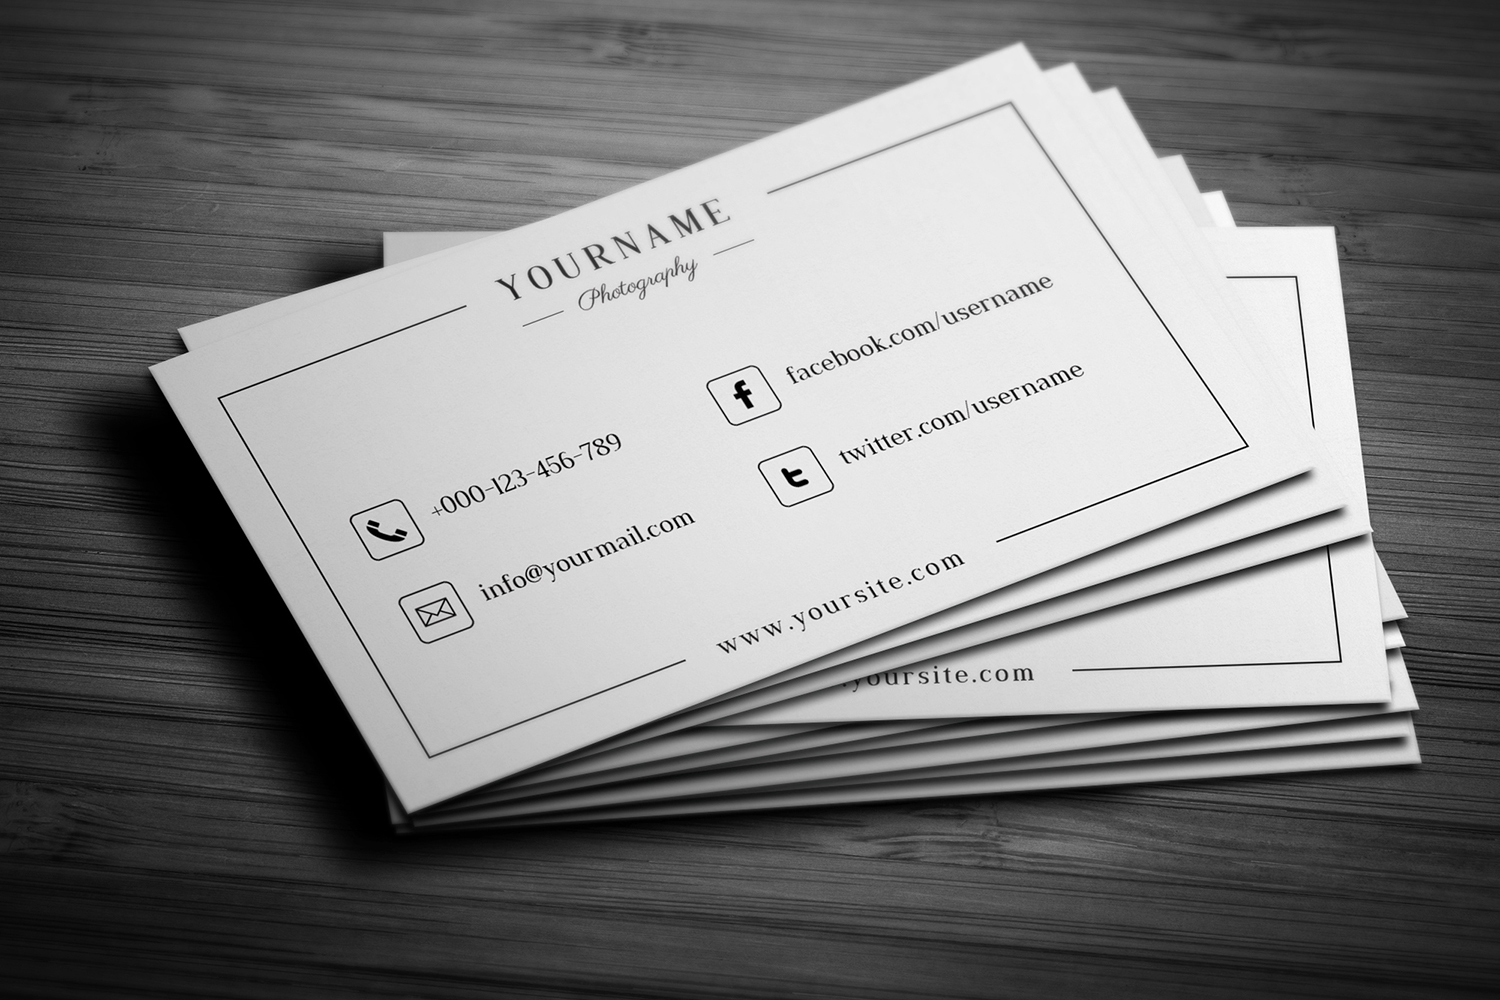 Minimal Wedding Photography Business Card  example image 3